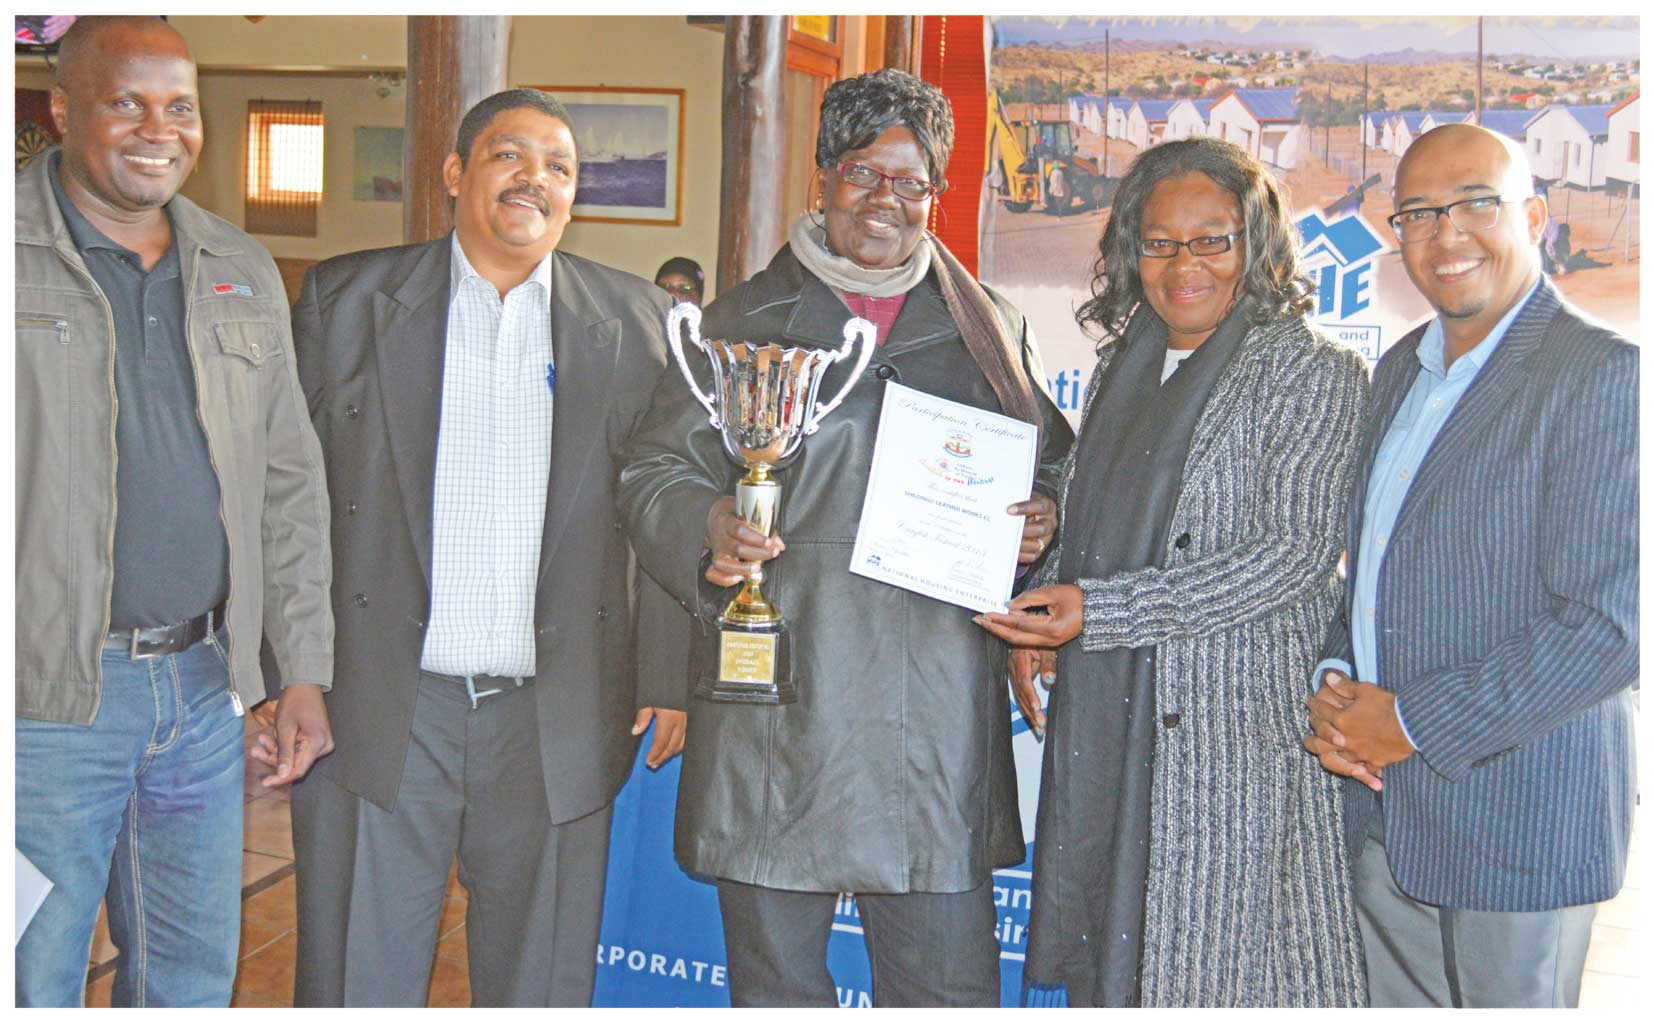 From left to right: Shali Akwaanyenga, PRO of the Lüderitz Town Council, Willem Titus, Acting Manager: Business Development & Operations at National Housing Enterprise (NHE), Selma Shilongo, Shilongo Leather Works, (Overall Winner: Lüderitz Crayfish Festival), Cllr. Suzan Ndjaleka, Mayor of Lüderitz, Gladwin Groenewaldt, Senior Corporate Communication Officer, NHE.